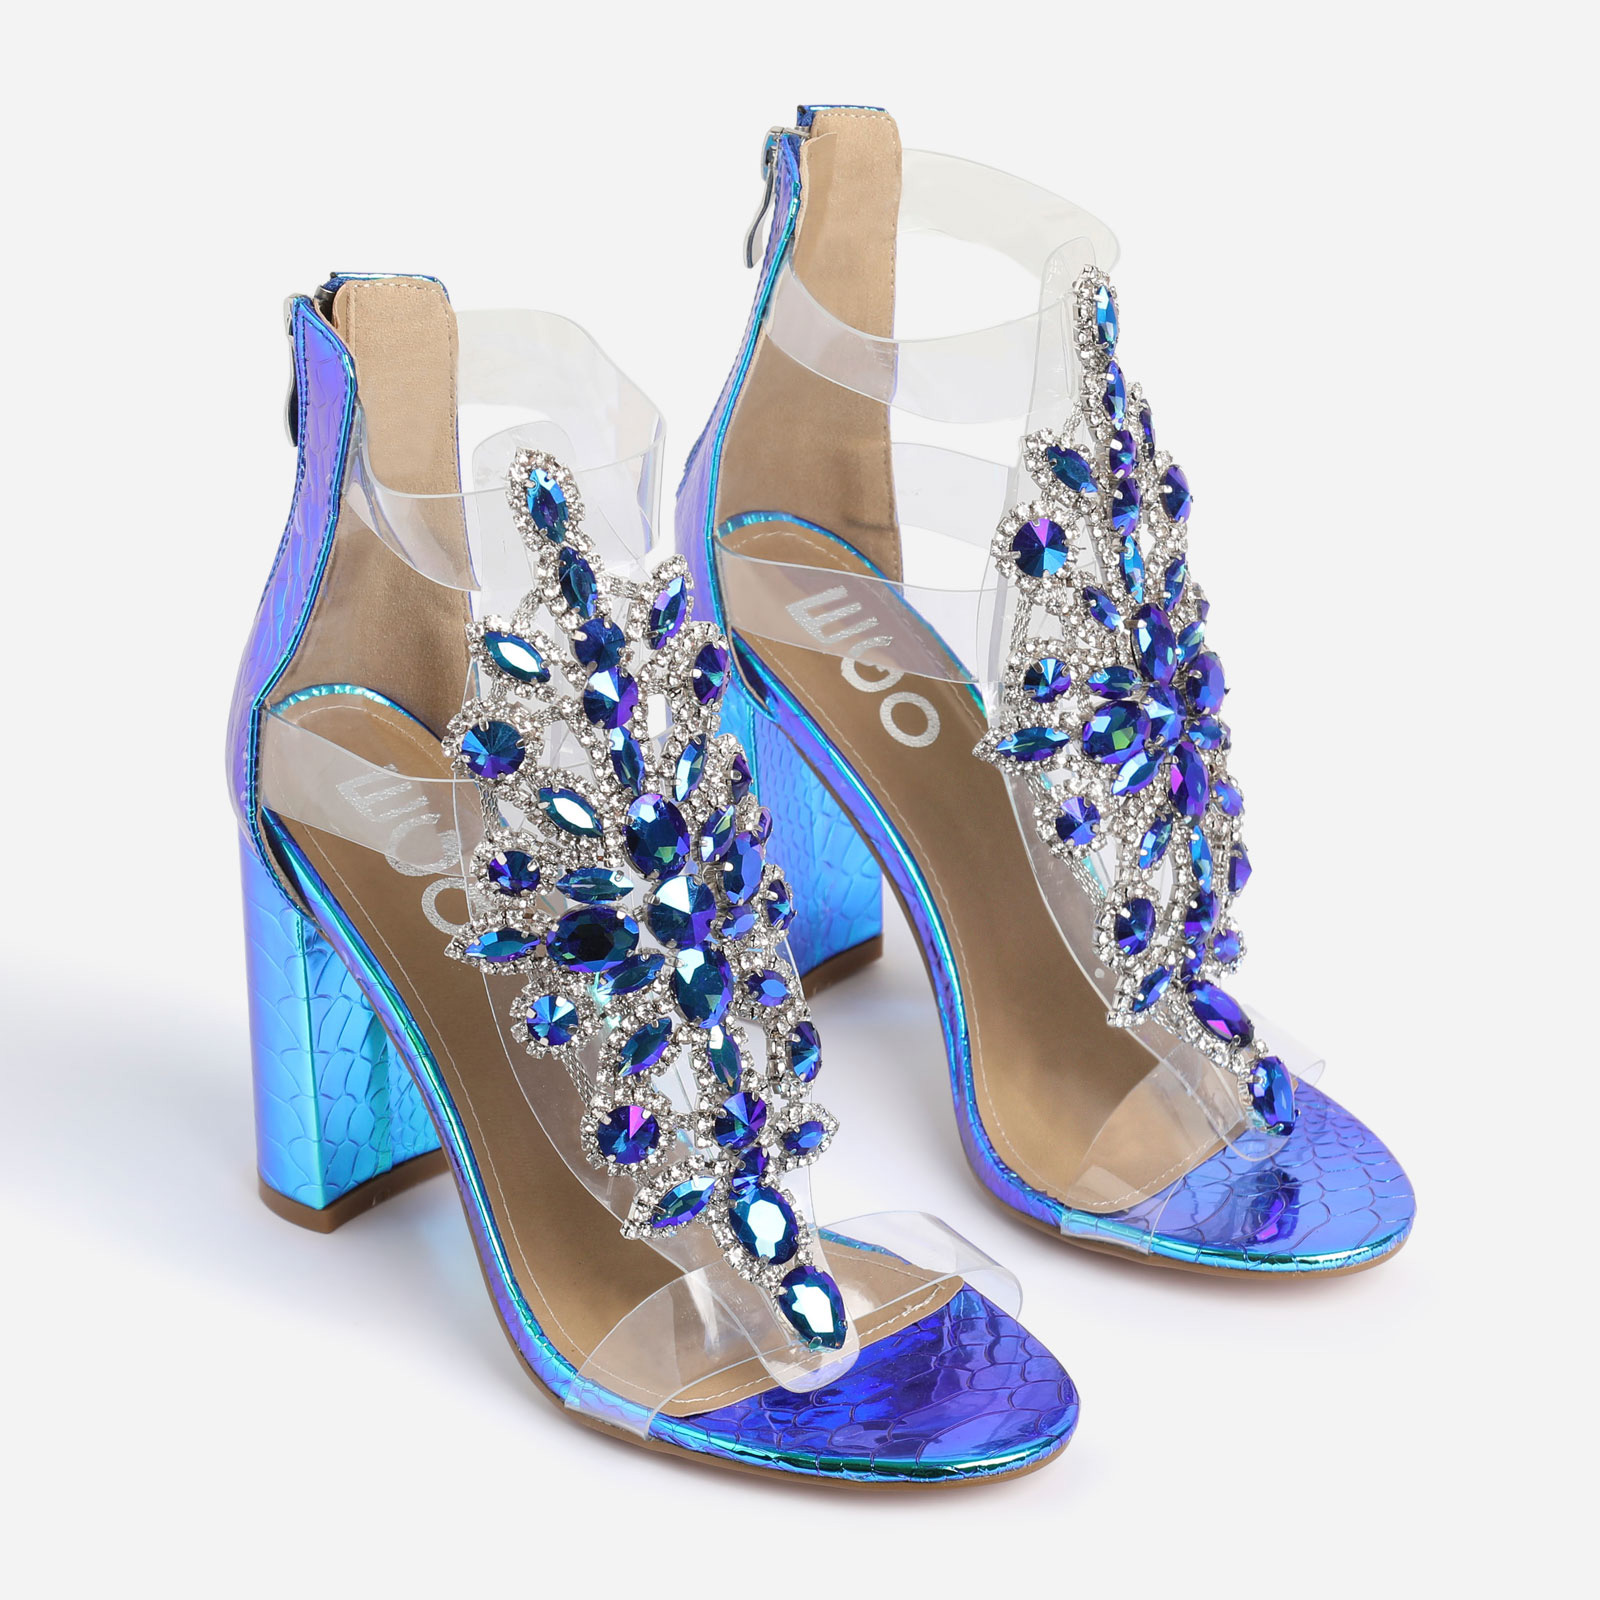 Tatum Jewel Embellished Block Heel In Blue Holographic Snake Print Faux Leather